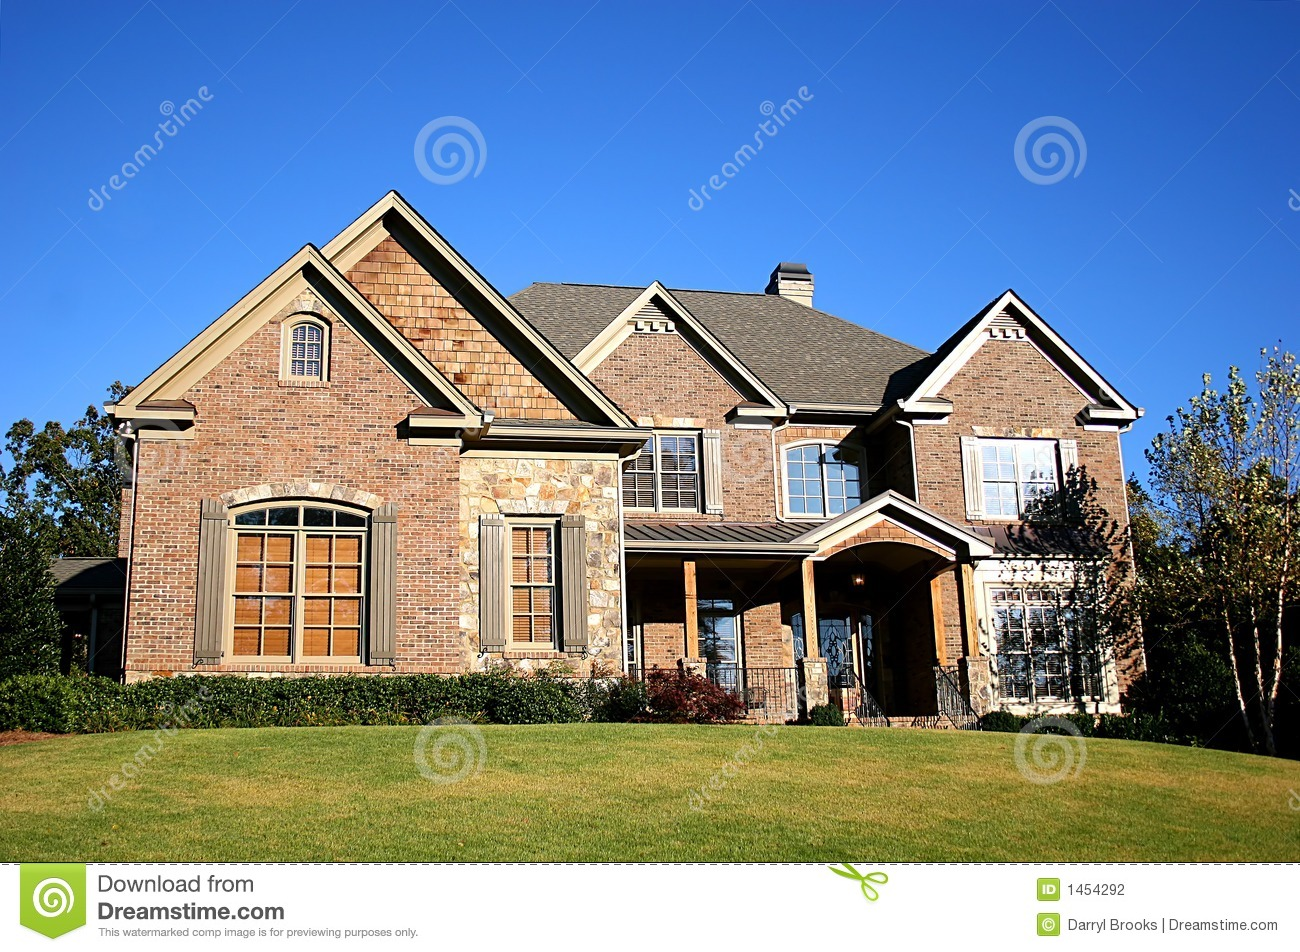 Nice house stock photography image 1454292 for Nice house picture